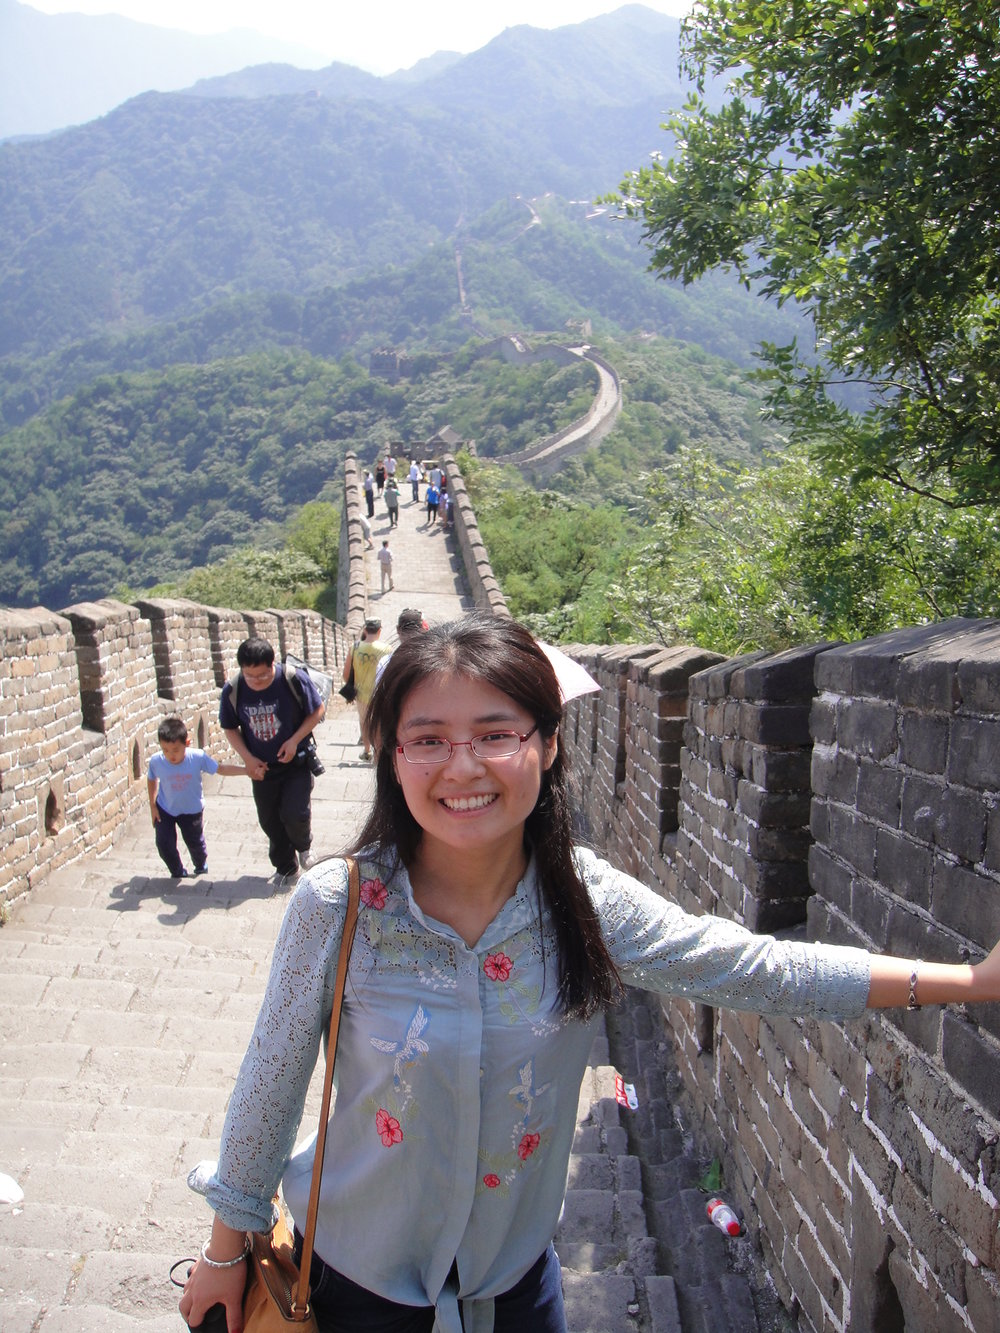 Yuting at the Great Wall of China.